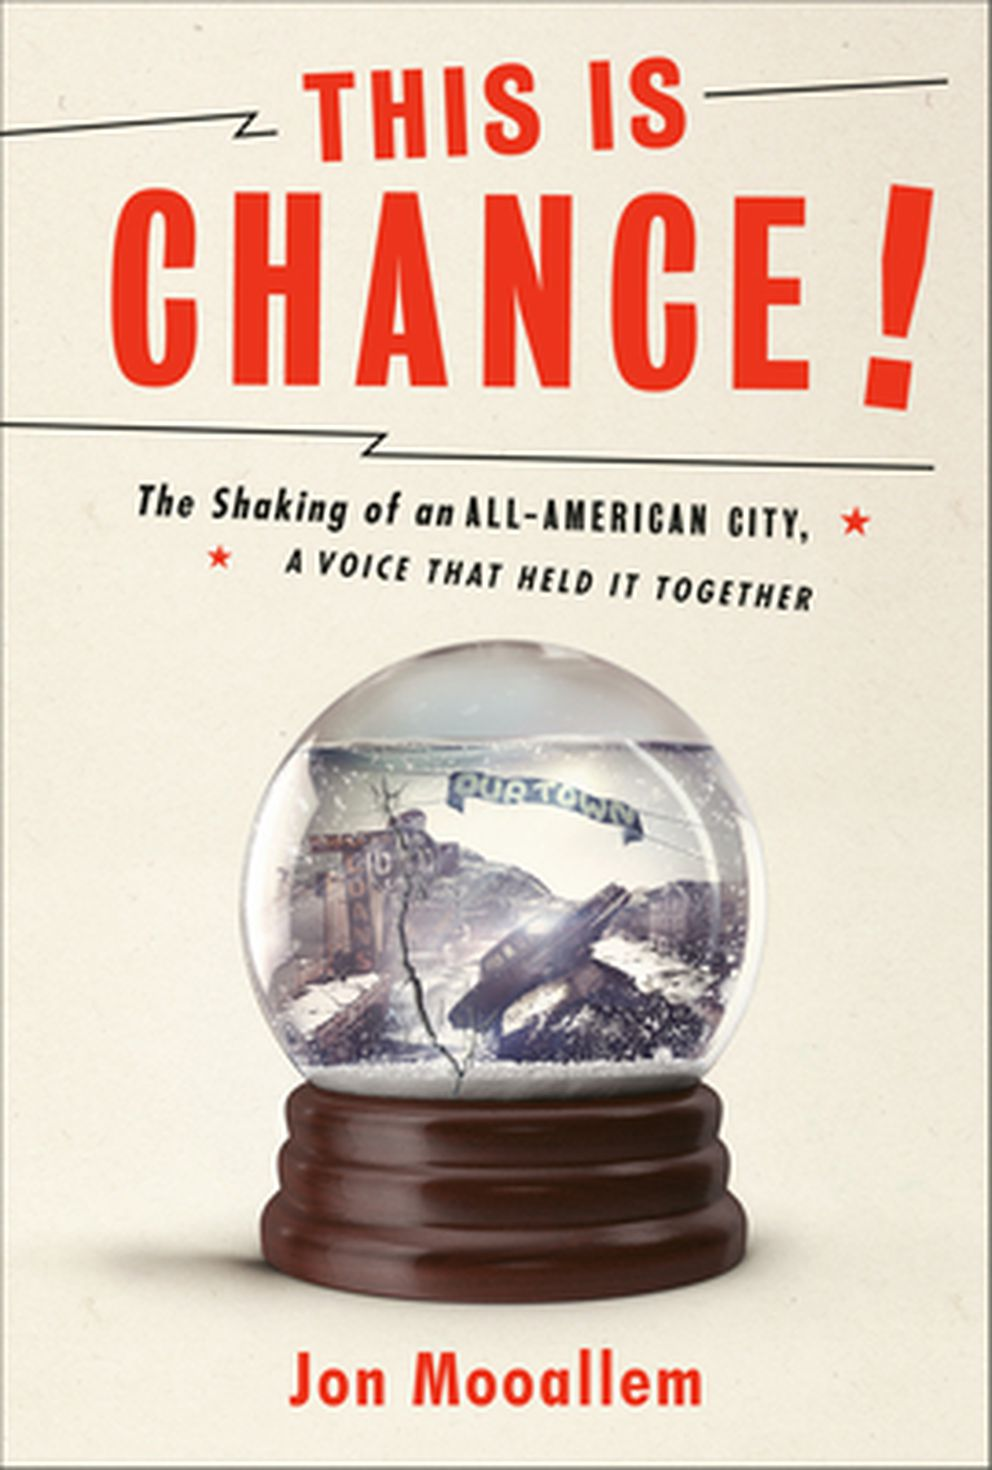 'This Is Chance! The Shaking of an All-American City, A Voice That Held it Together, ' by Jon Mooallem